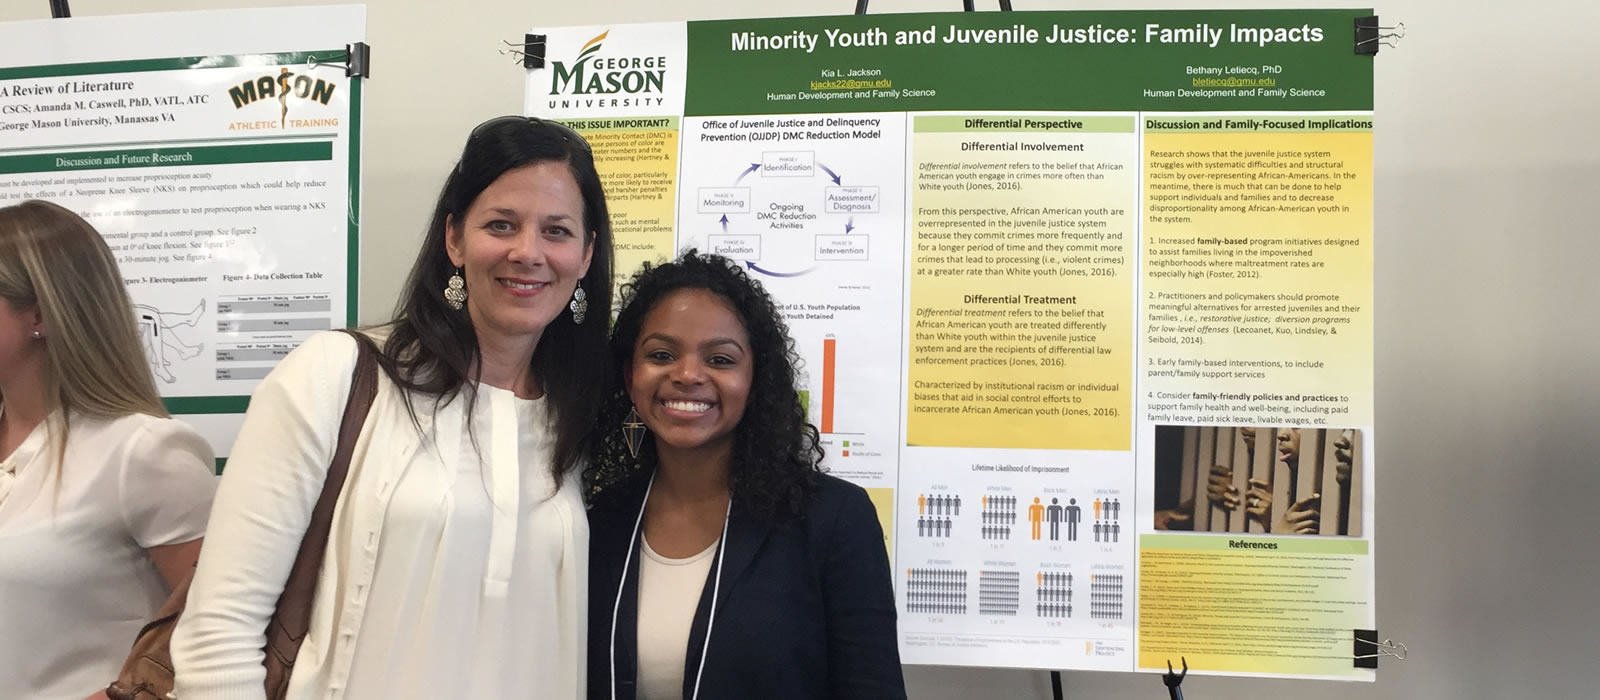 Kia Jackson presents scholarly research